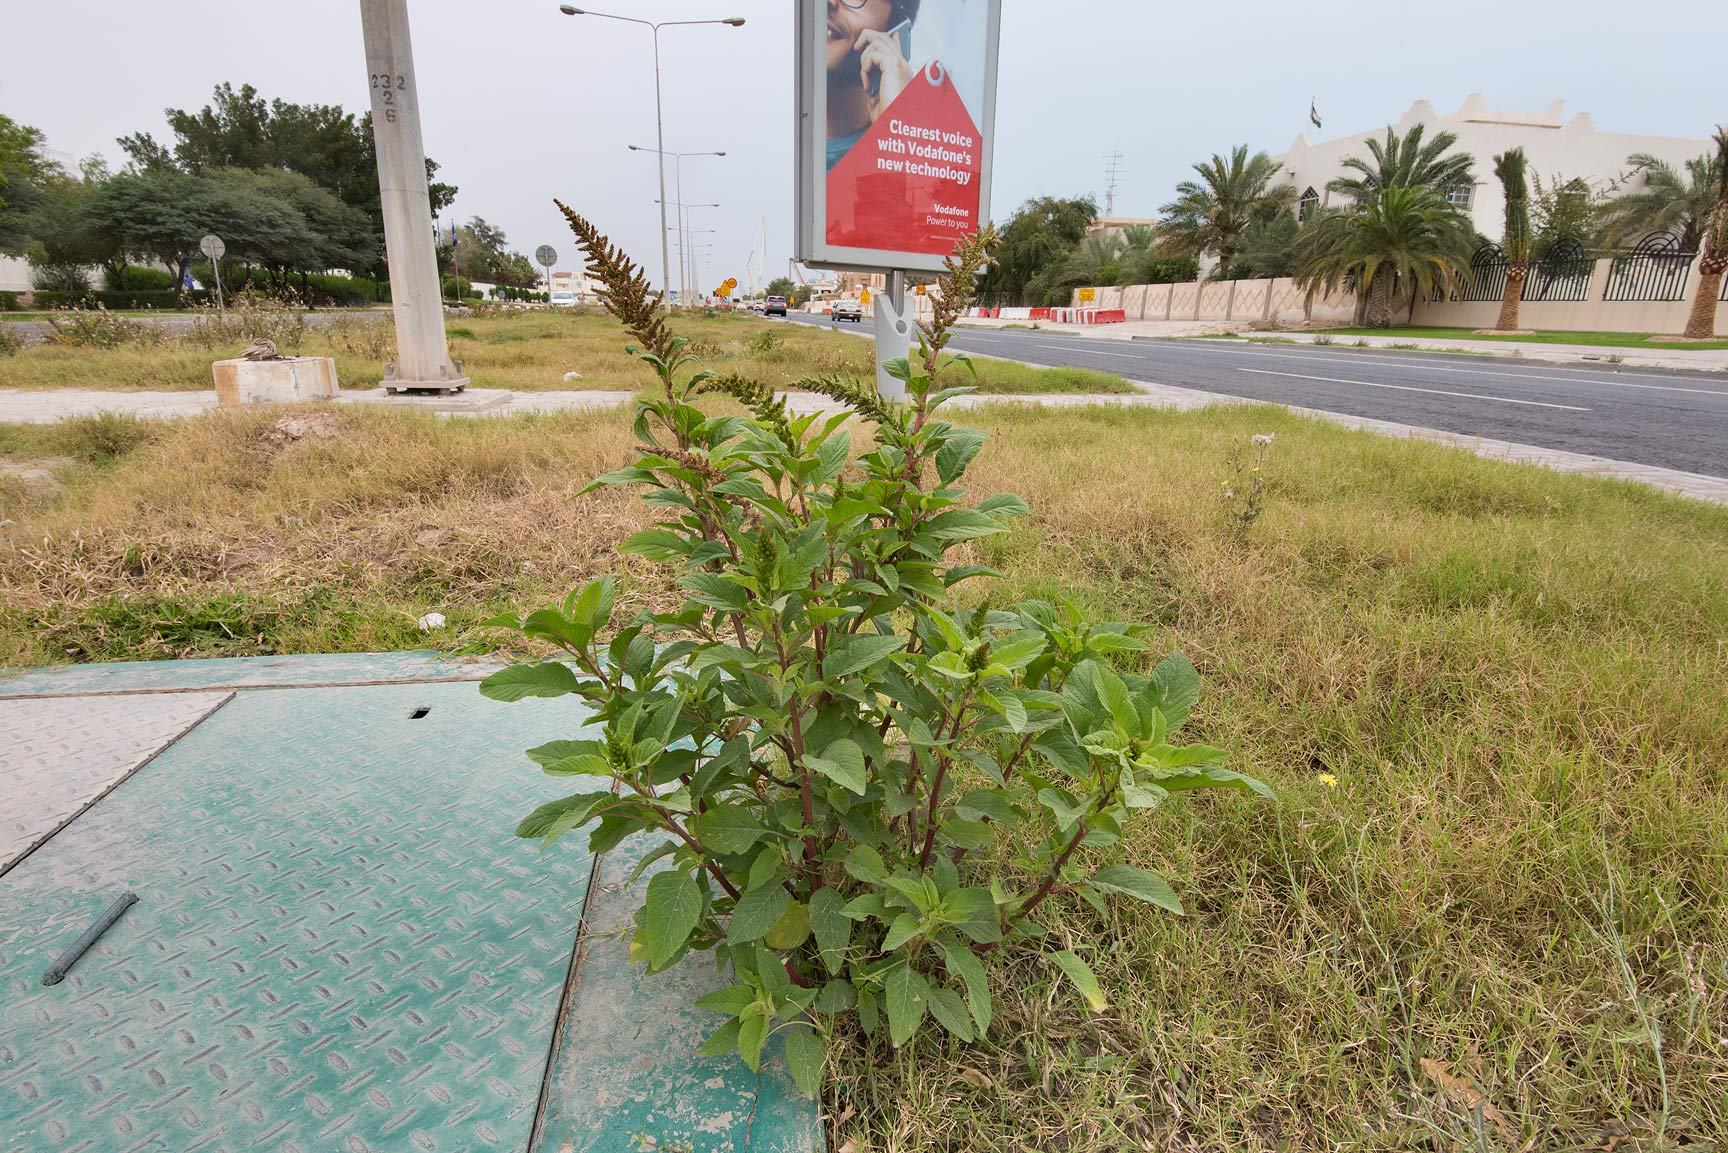 Amaranthus hybridus grown on the median strip of...St. in Onaiza area. Doha, Qatar